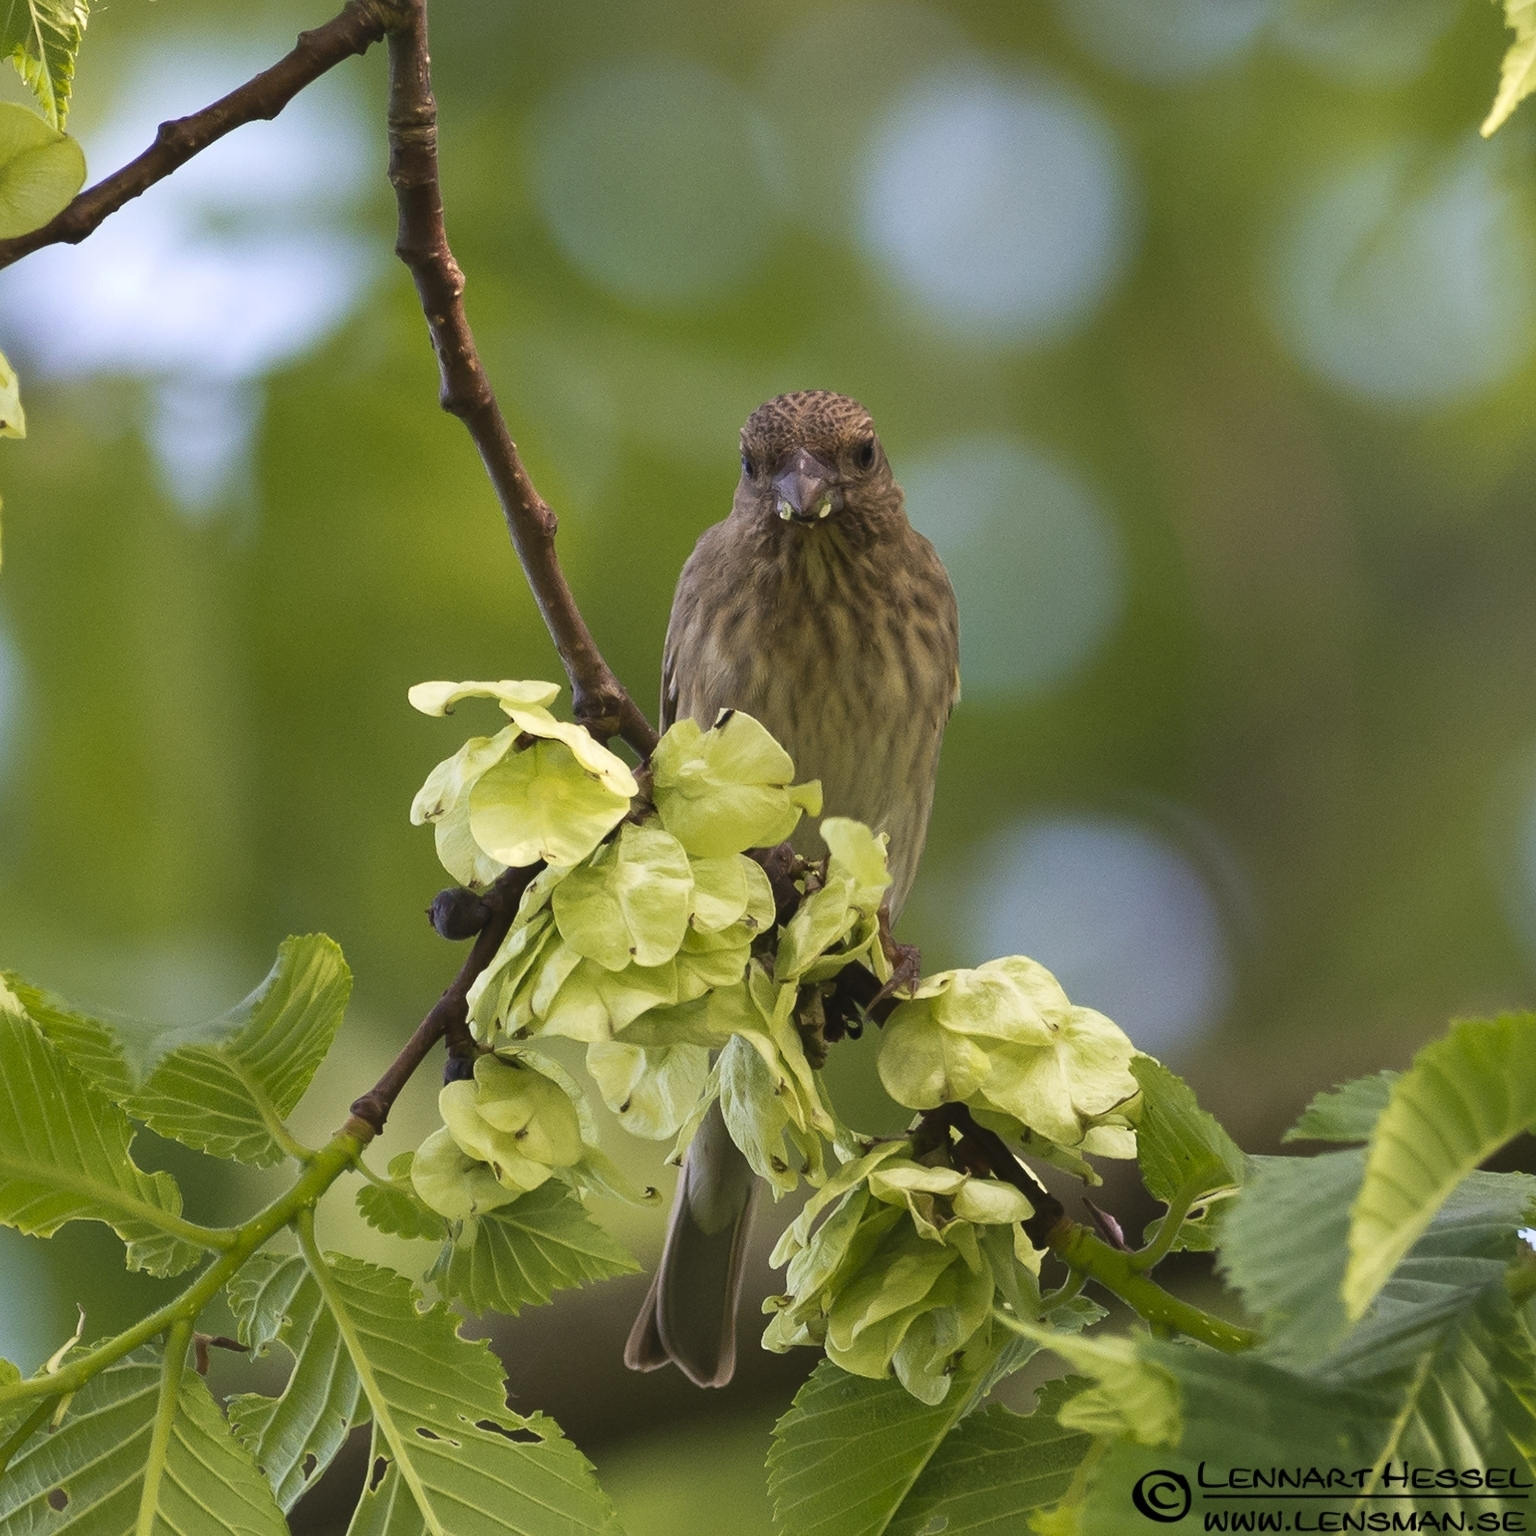 Common Rosefinch at Säveån, Gothenburg